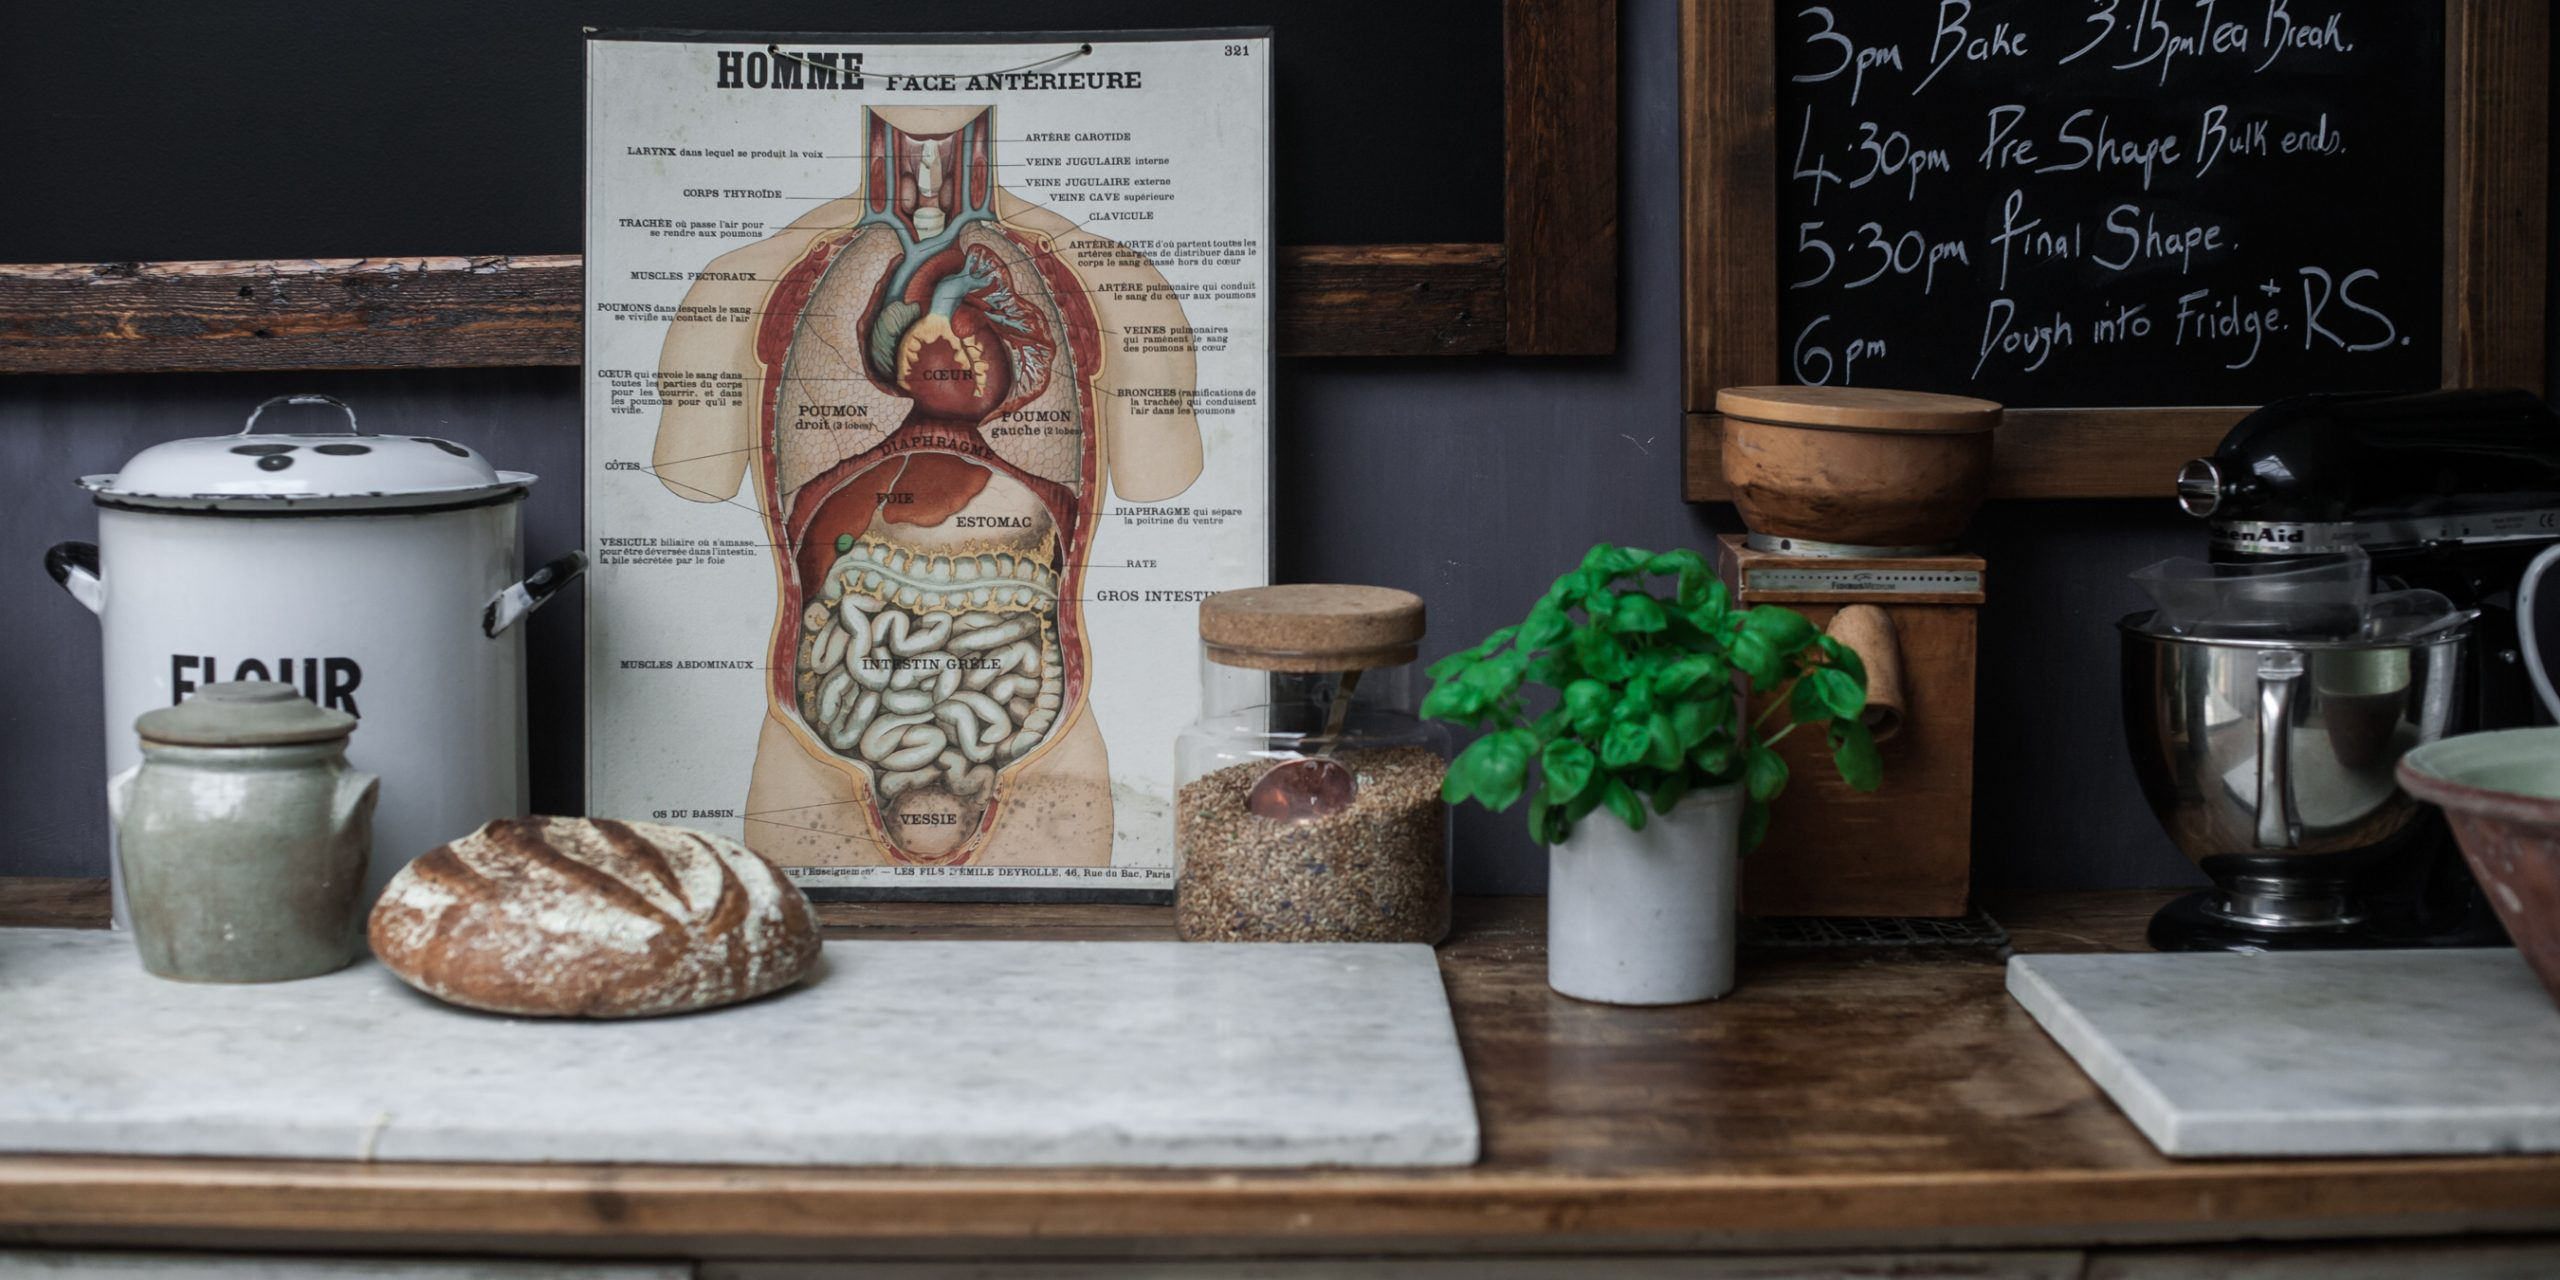 inflammation, sourdough and the gut microbiome